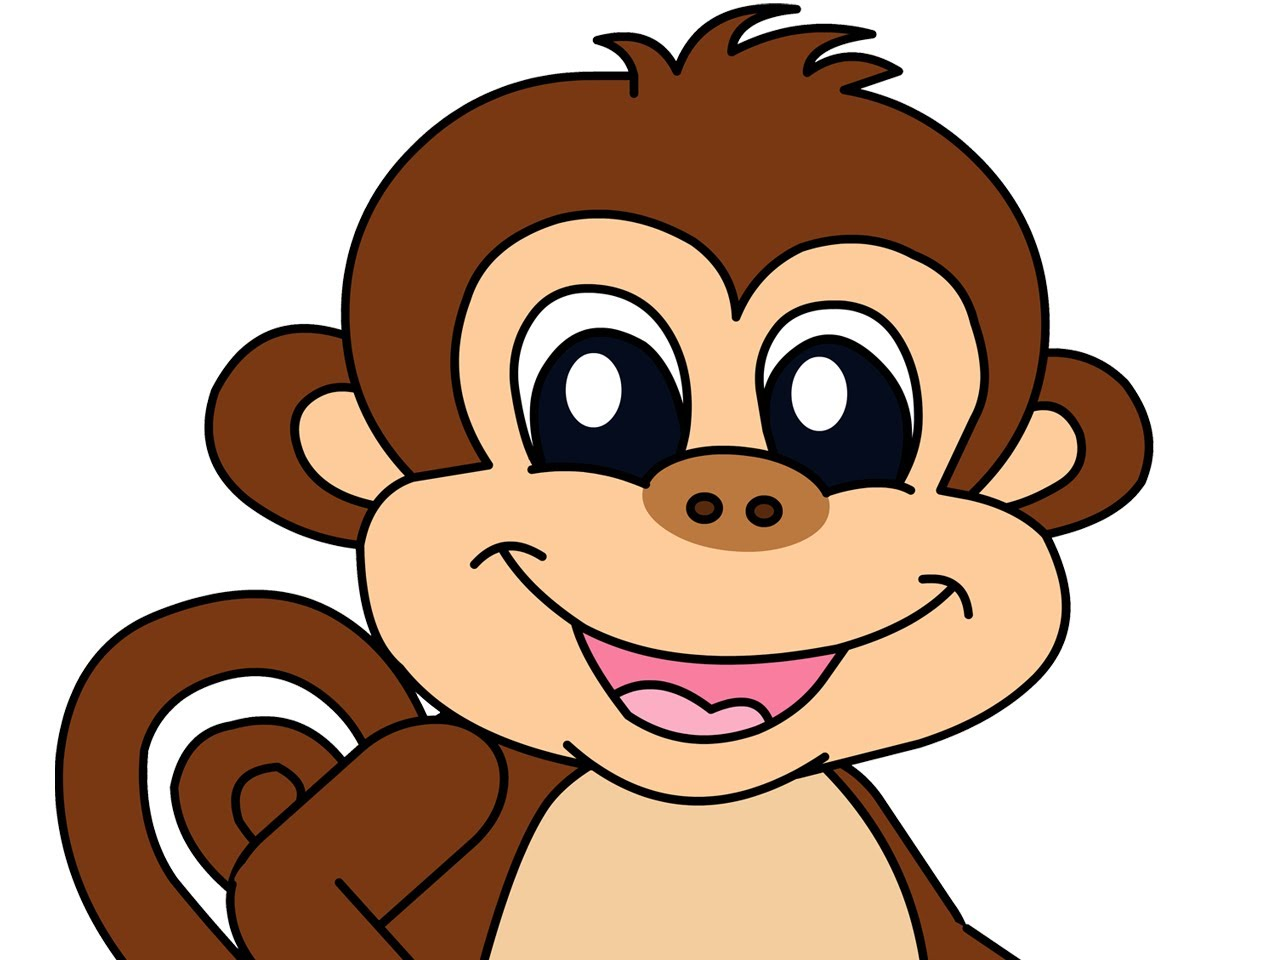 Monkey Images Cartoon